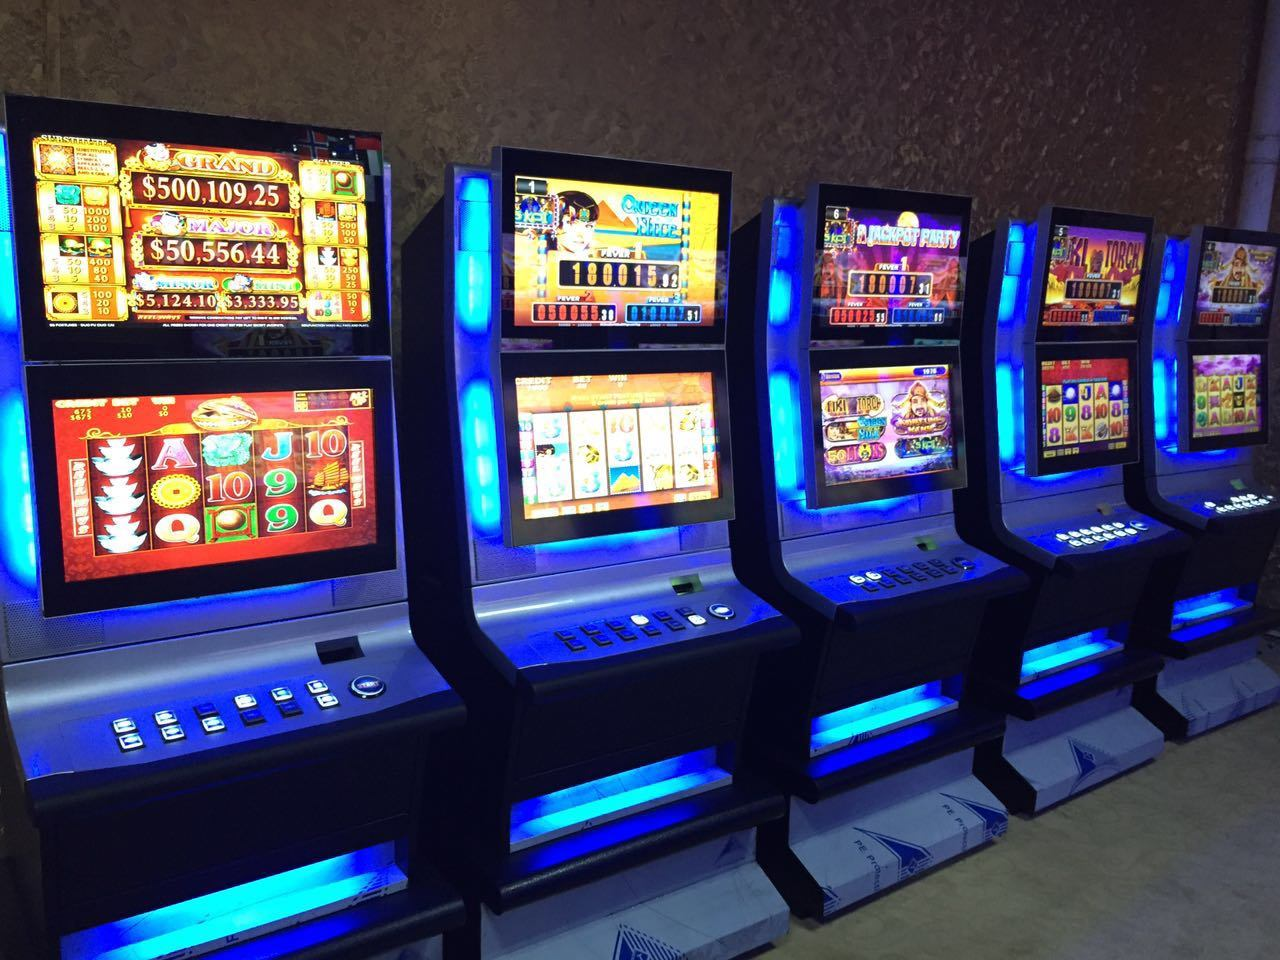 Jual Mesin Judi Slot Mesin Video Game - Mesin Permainan Cina dan Harga Mesin Slot |  Made-in-China.com